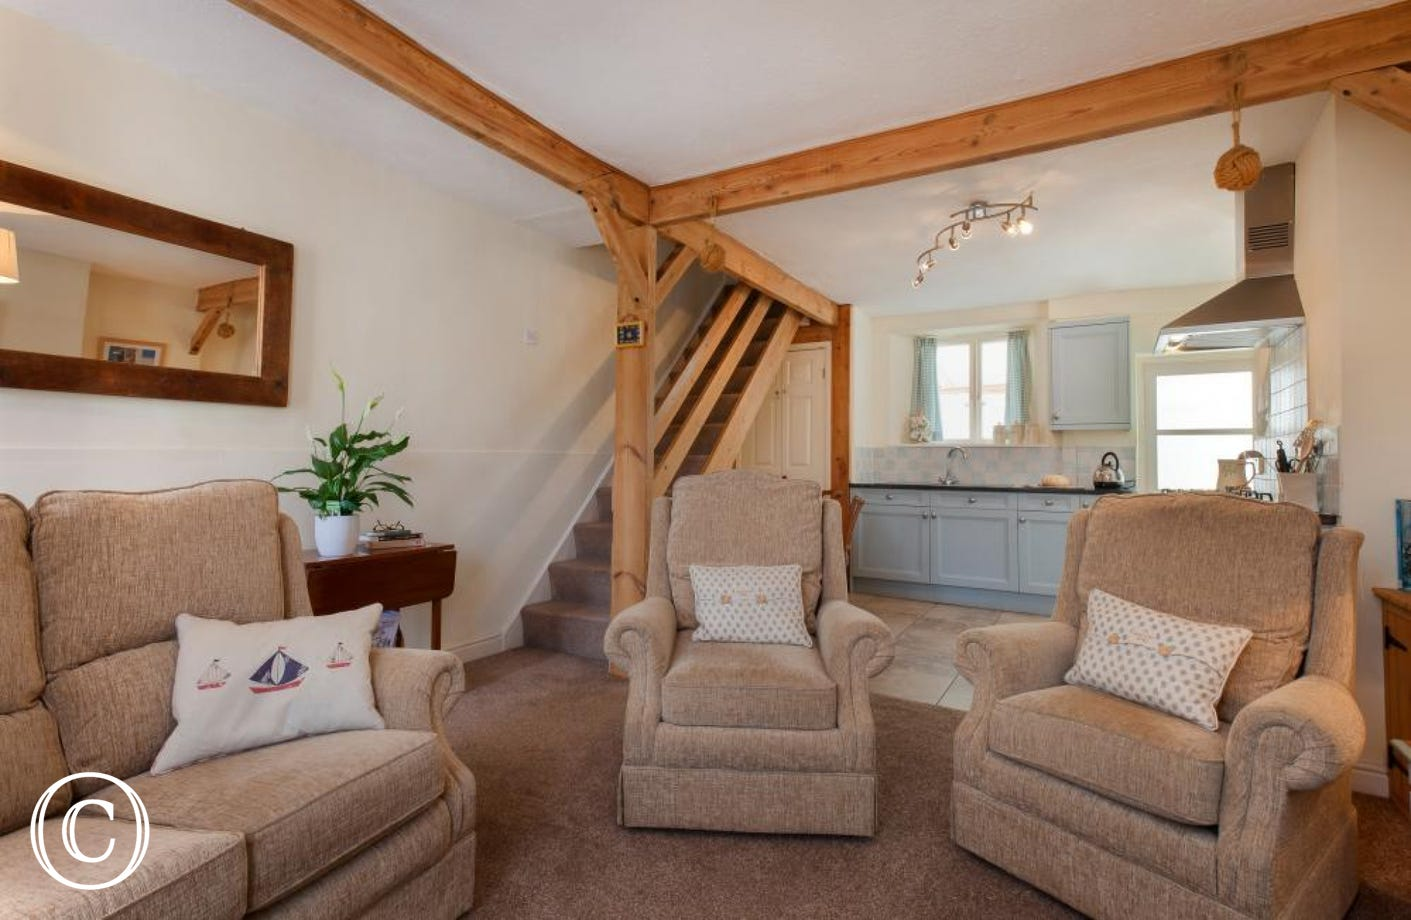 Comfy living area with large soft sofas and seaside theme cushions in Shaldon holiday cottage